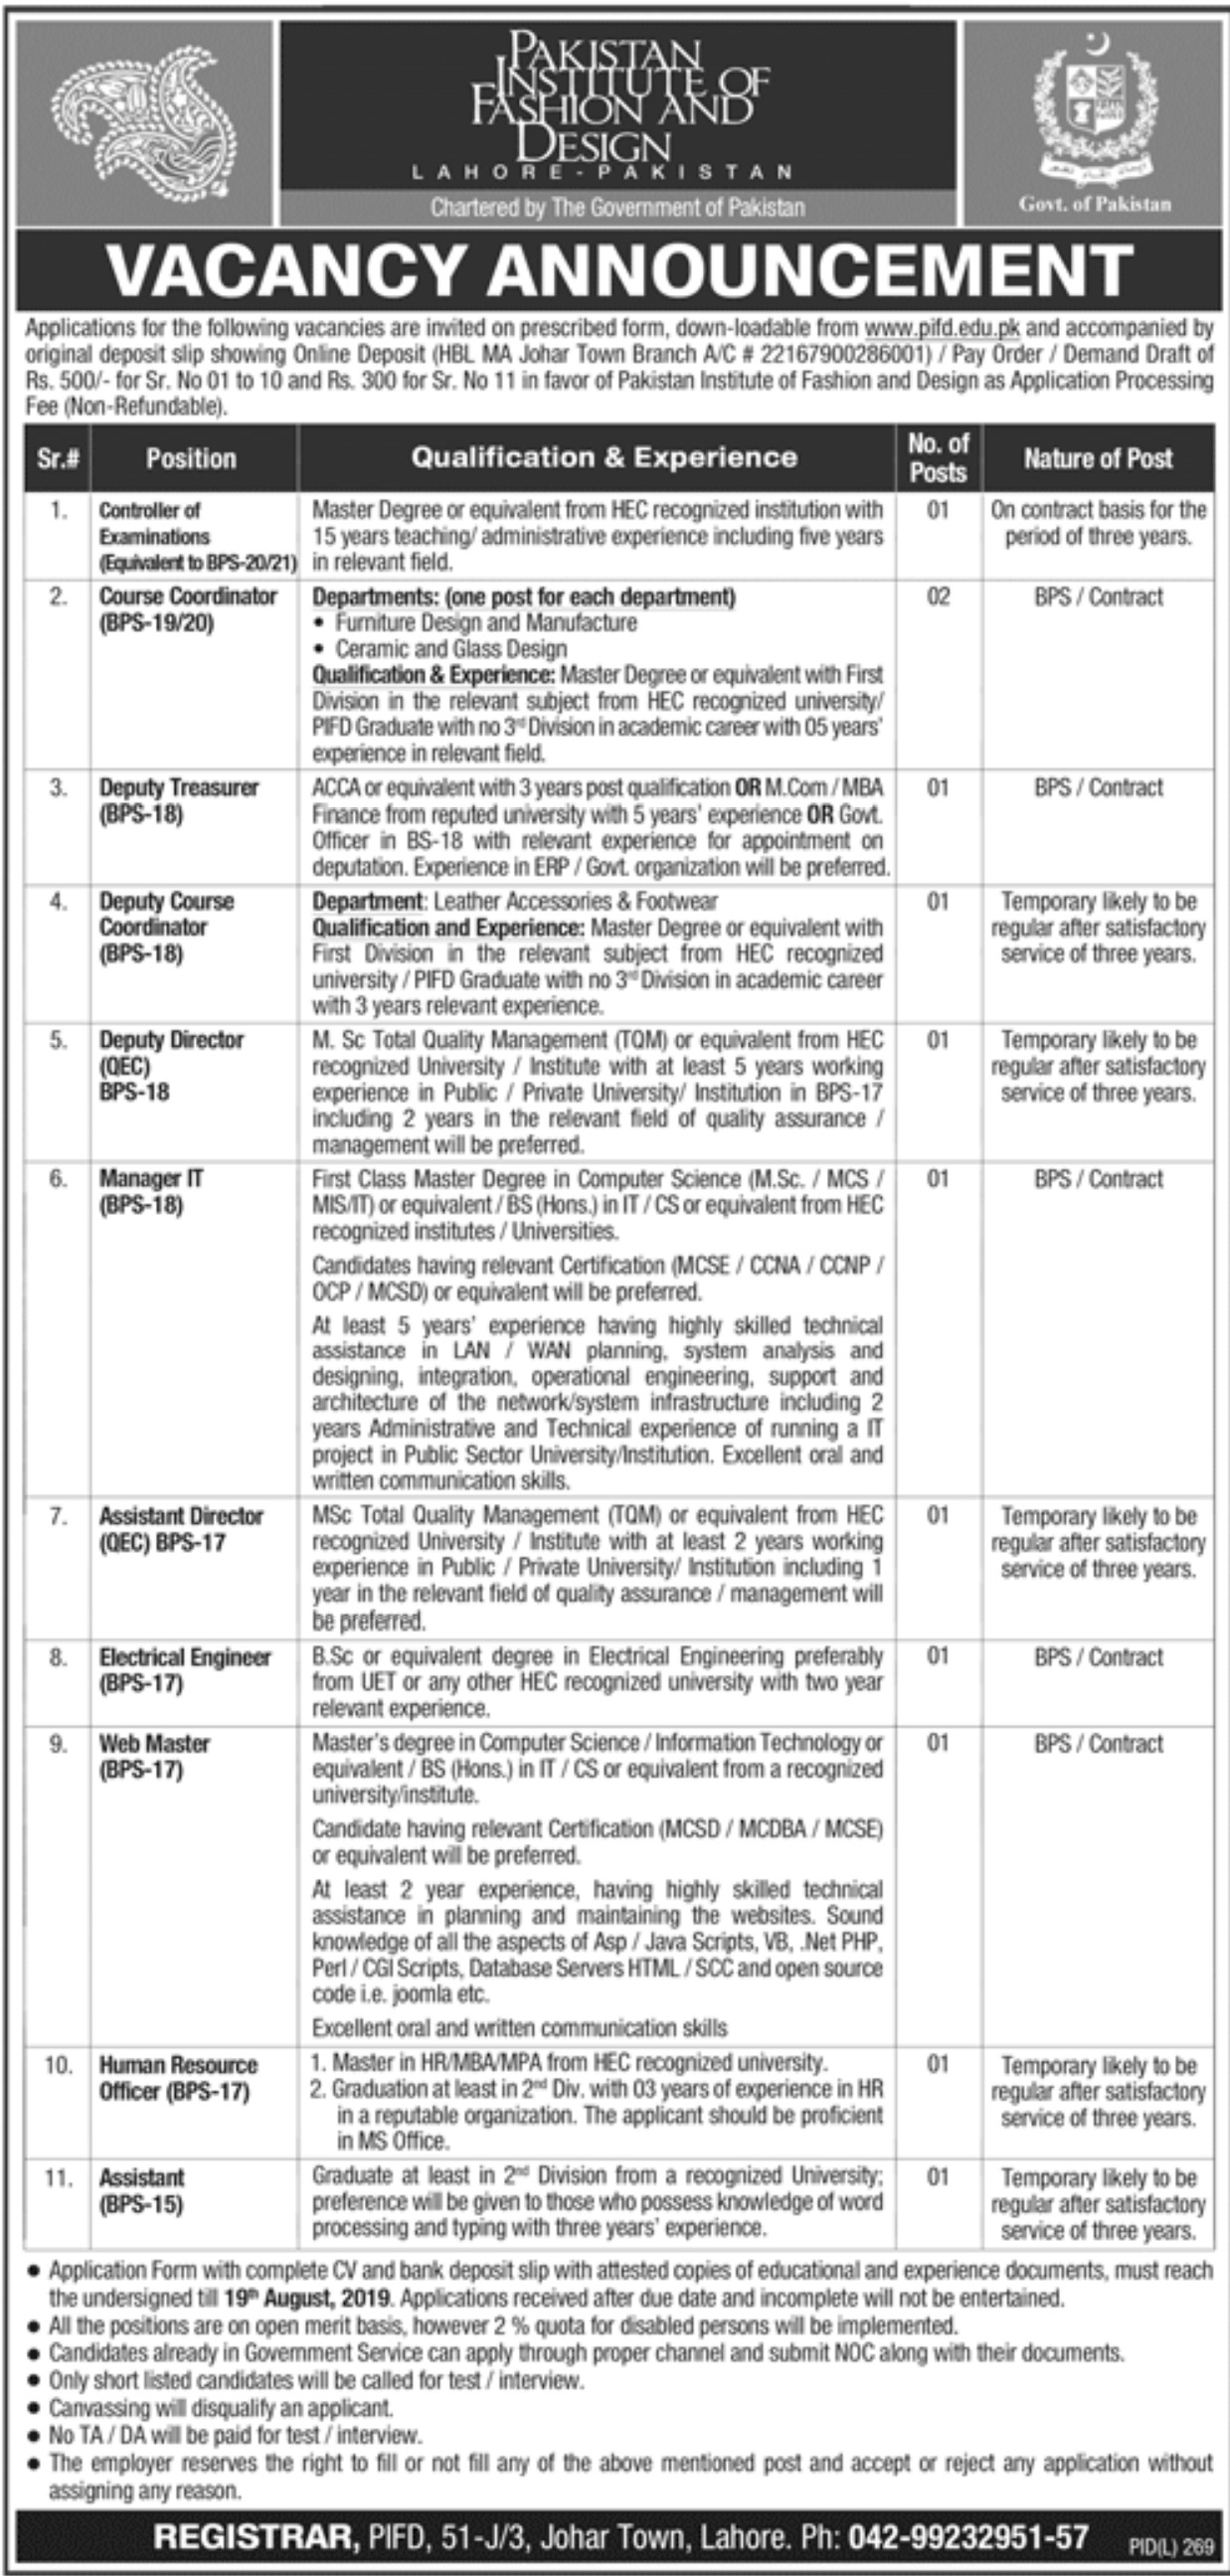 Pakistan Institute of Fashion & Design PIFD Jobs 2019 Download Application Form